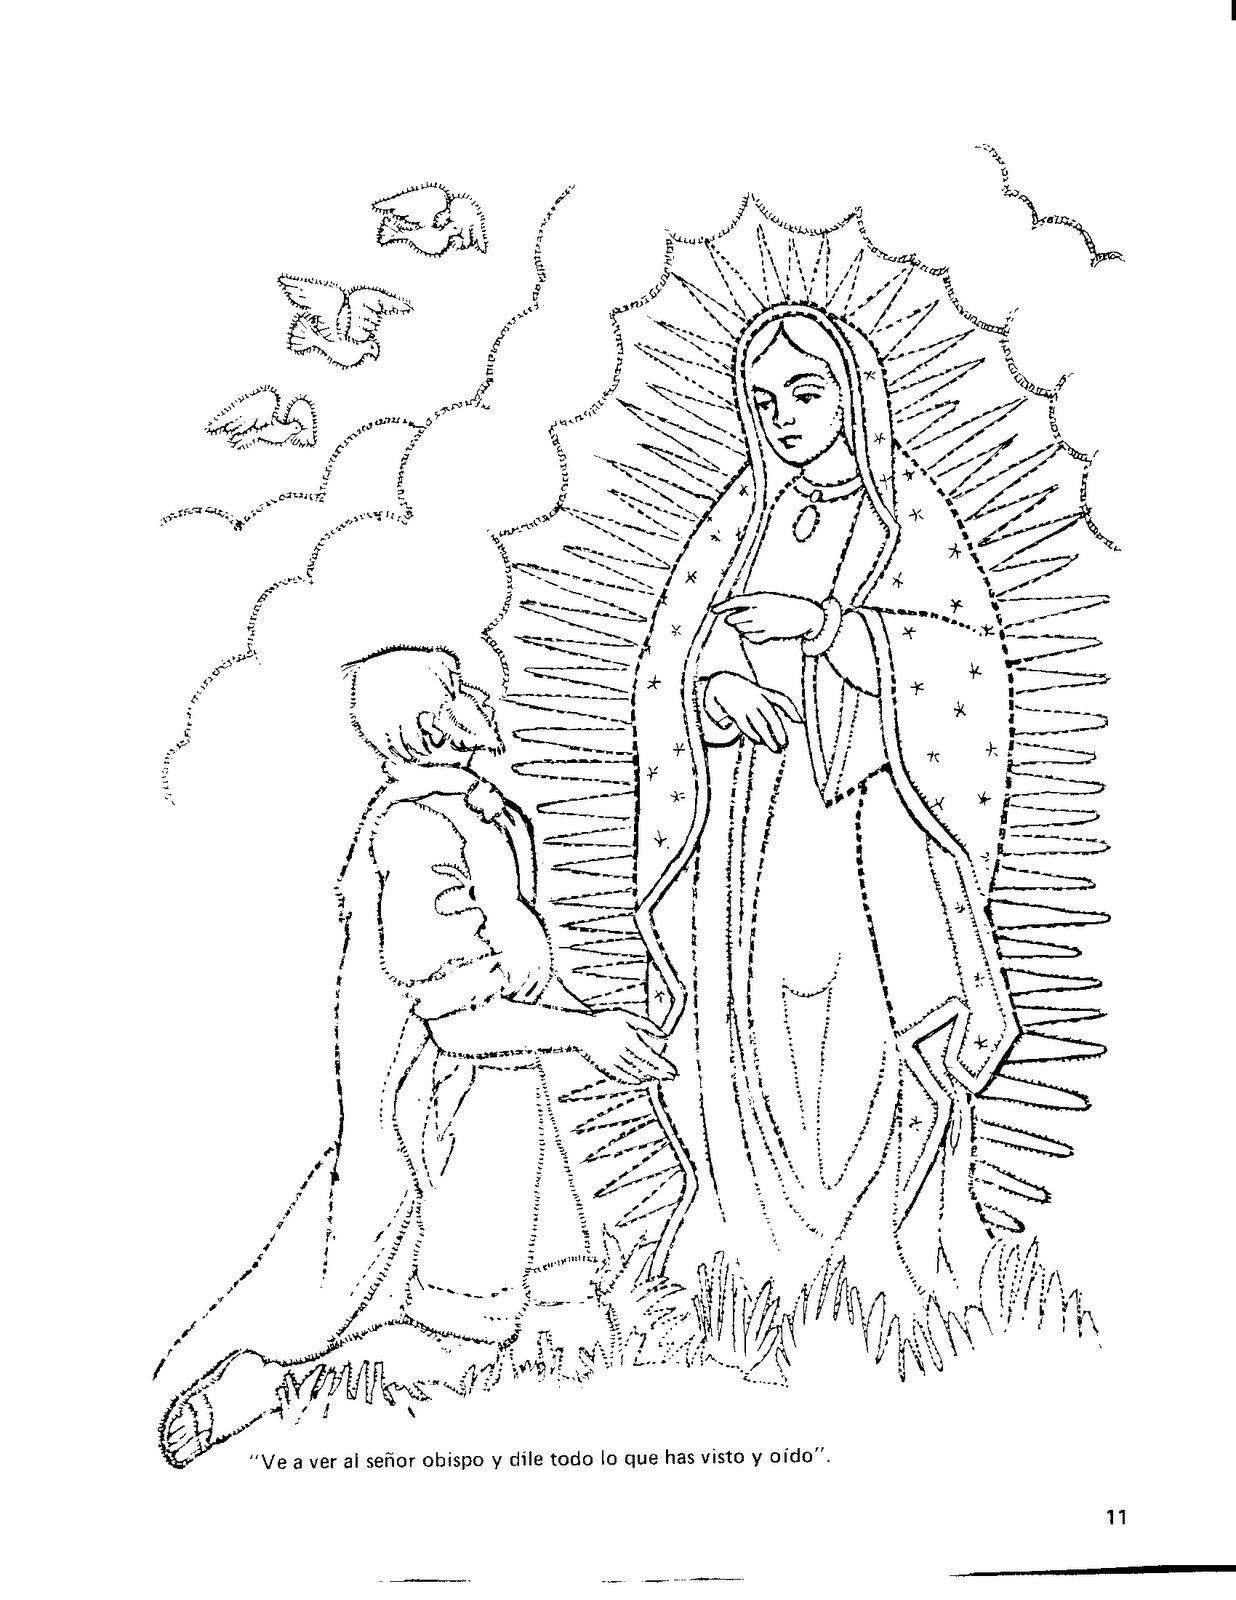 Free Virgen De Guadalupe Coloring Pages Download Free Clip